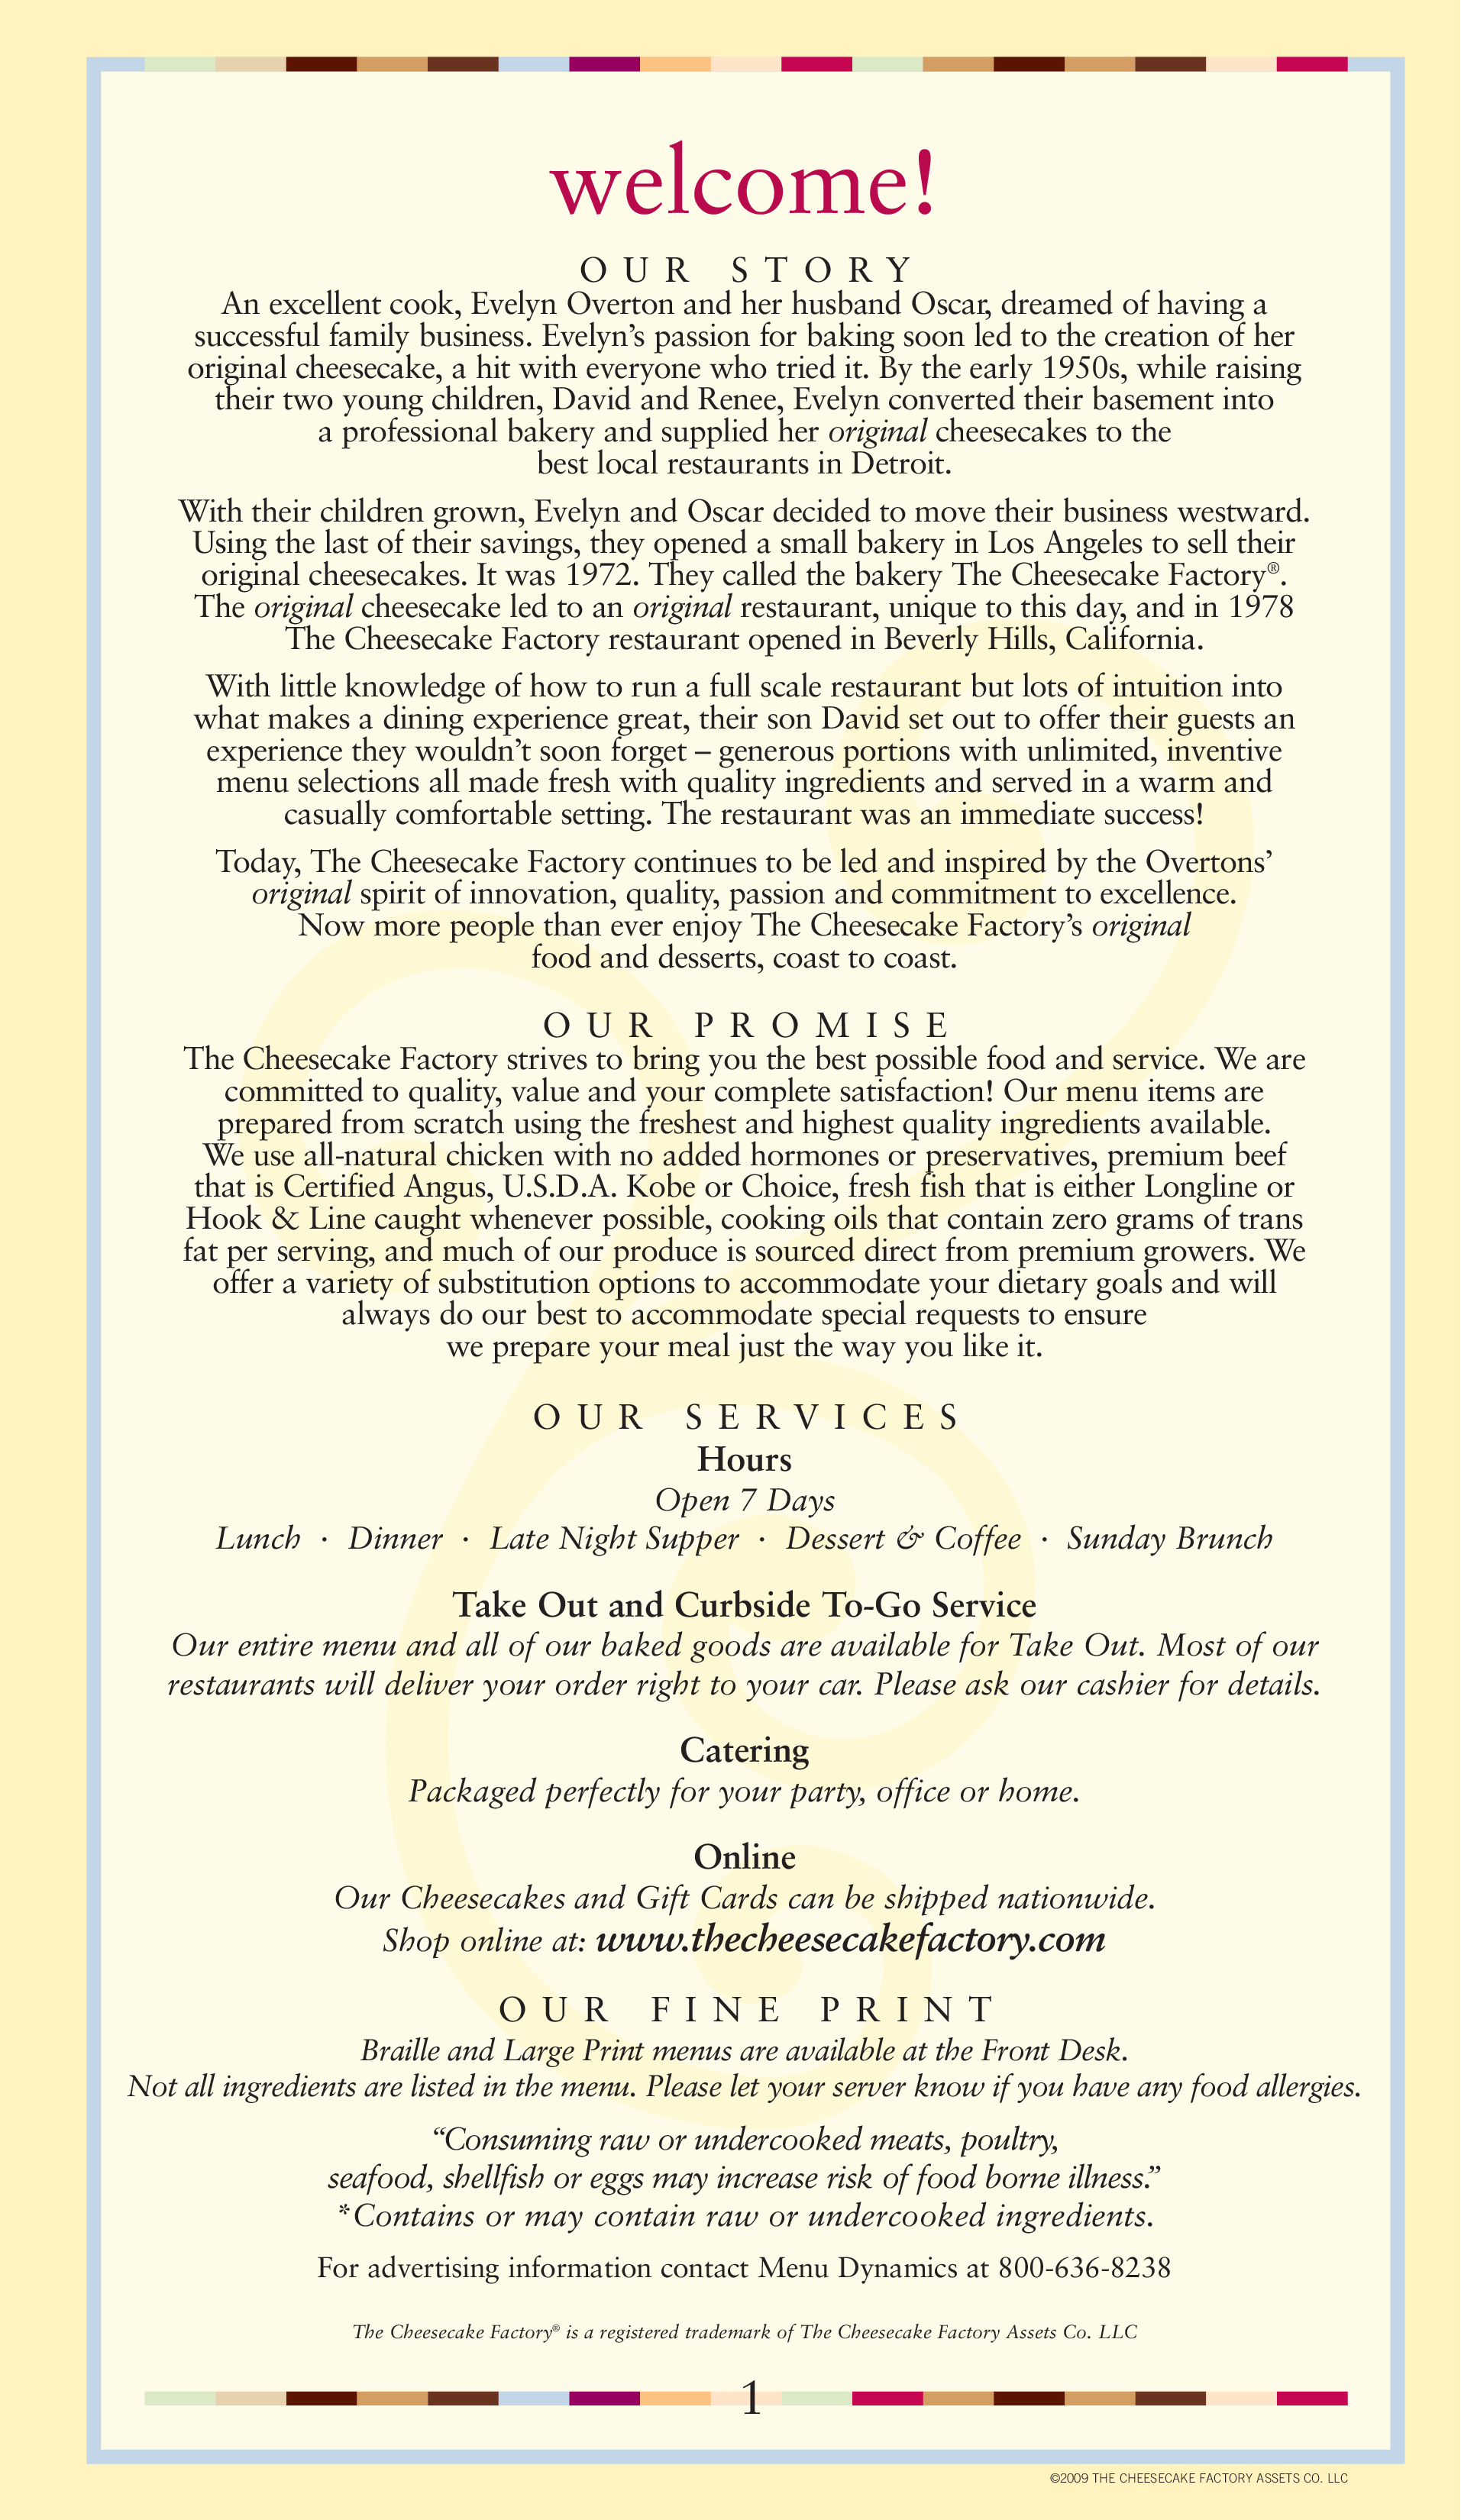 graphic relating to Cheesecake Factory Printable Menu known as The Cheesecake Manufacturing facility Menu, Menu for The Cheesecake Manufacturing unit